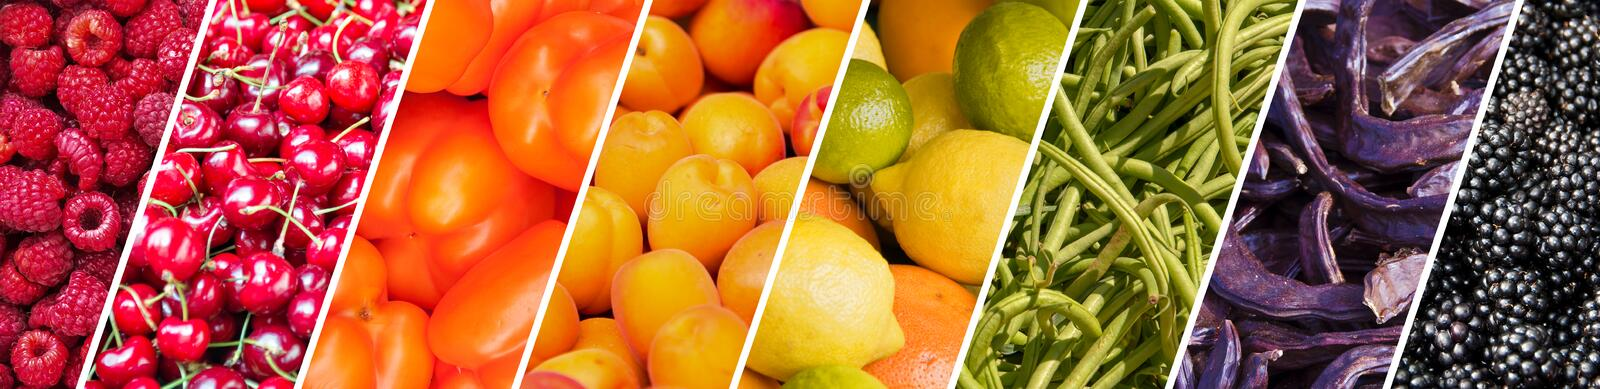 Fresh fruits and vegetables rainbow panoramic collage healthy eating concept royalty free stock photos